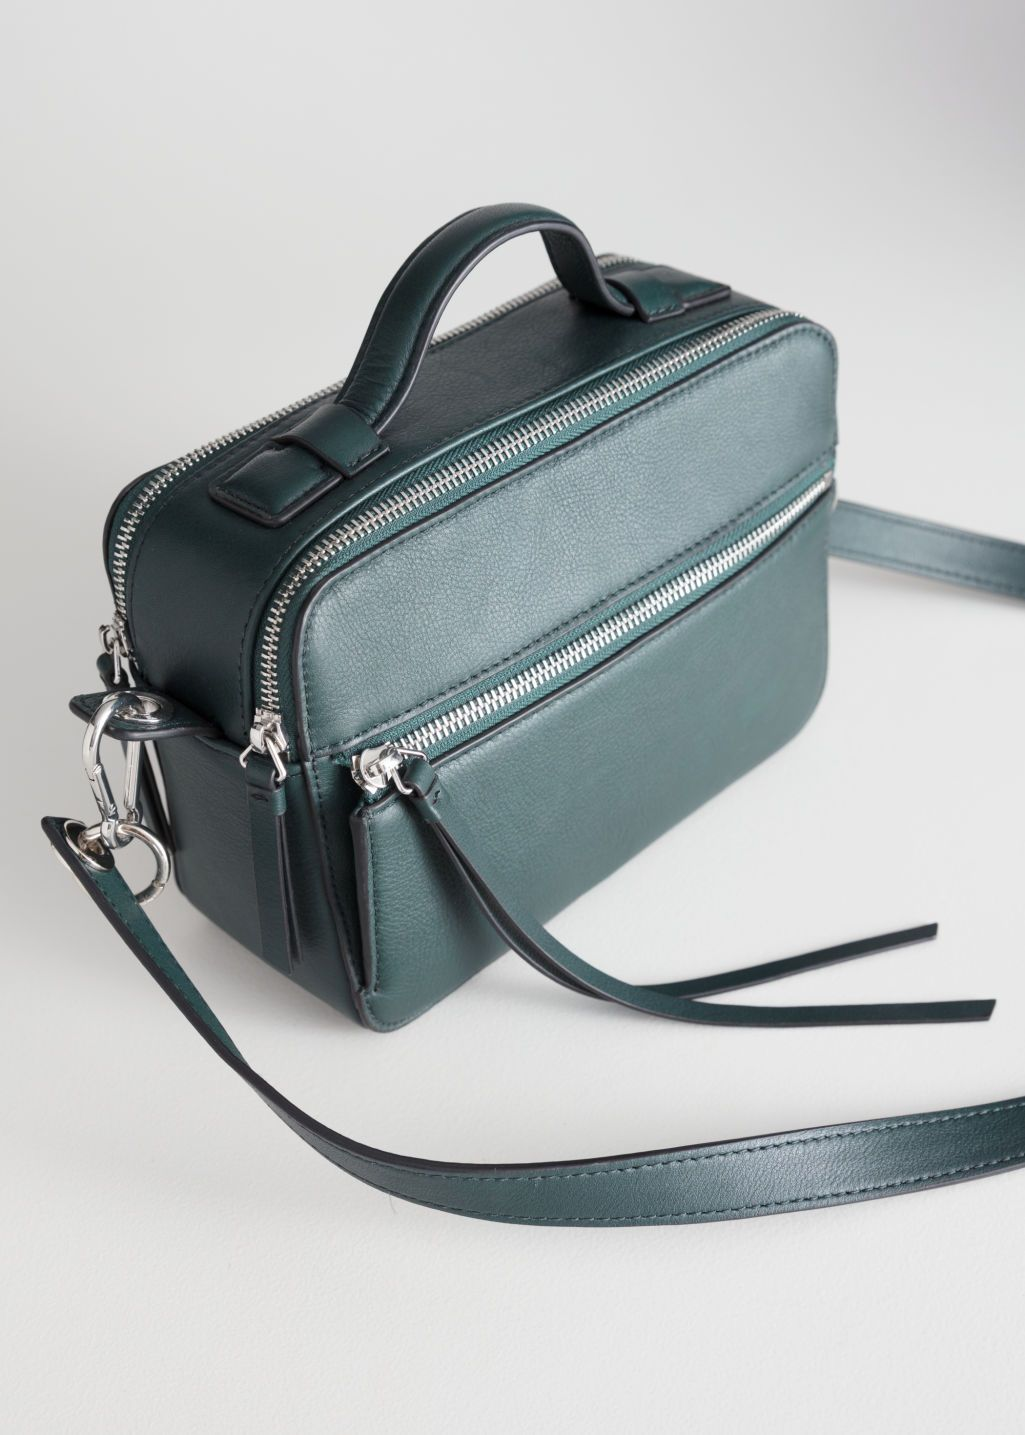 b811463fe067 Back image of Stories in green Bag Closet, Leather Handle, Green Bag, Casual